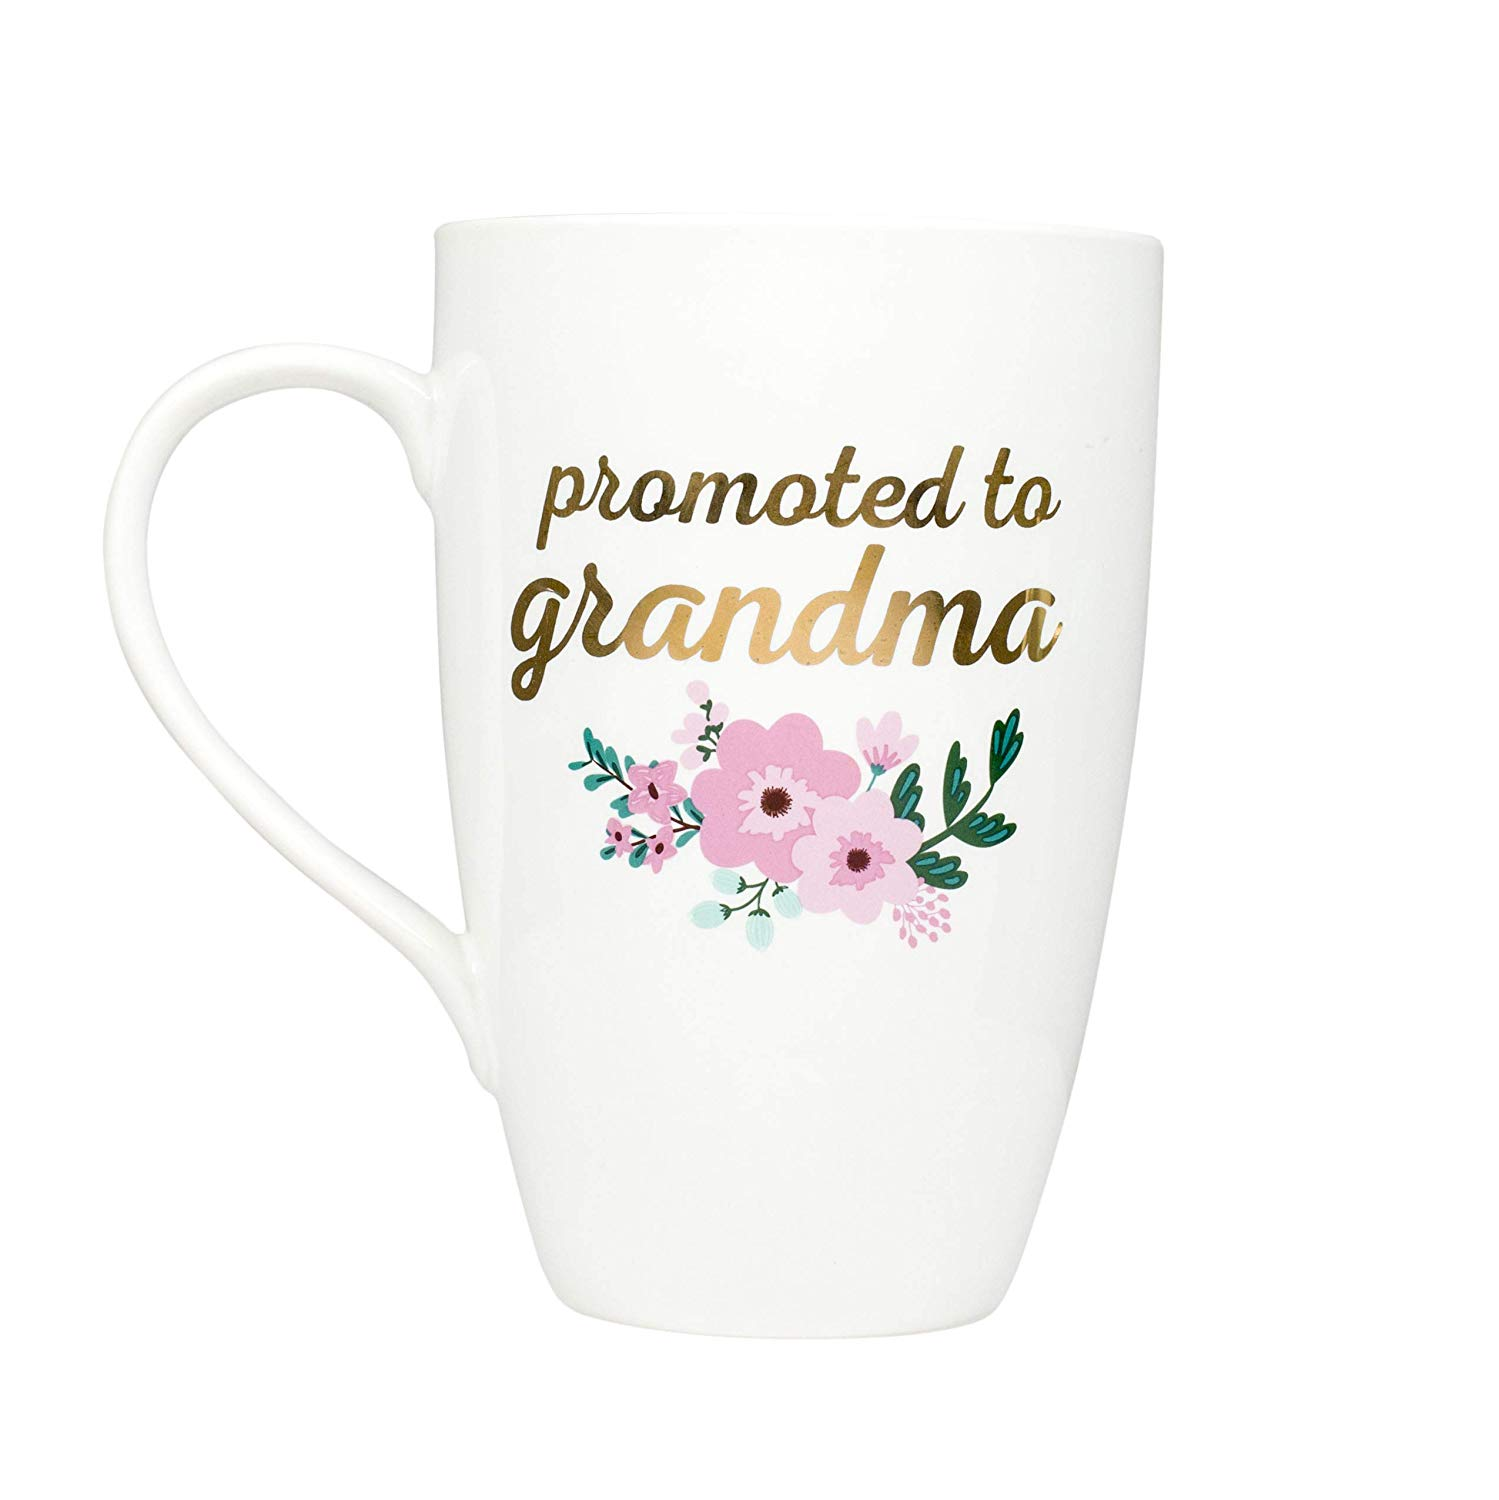 Oblong coffee mug reading in gold text: promoted to grandma with green and pink flowers